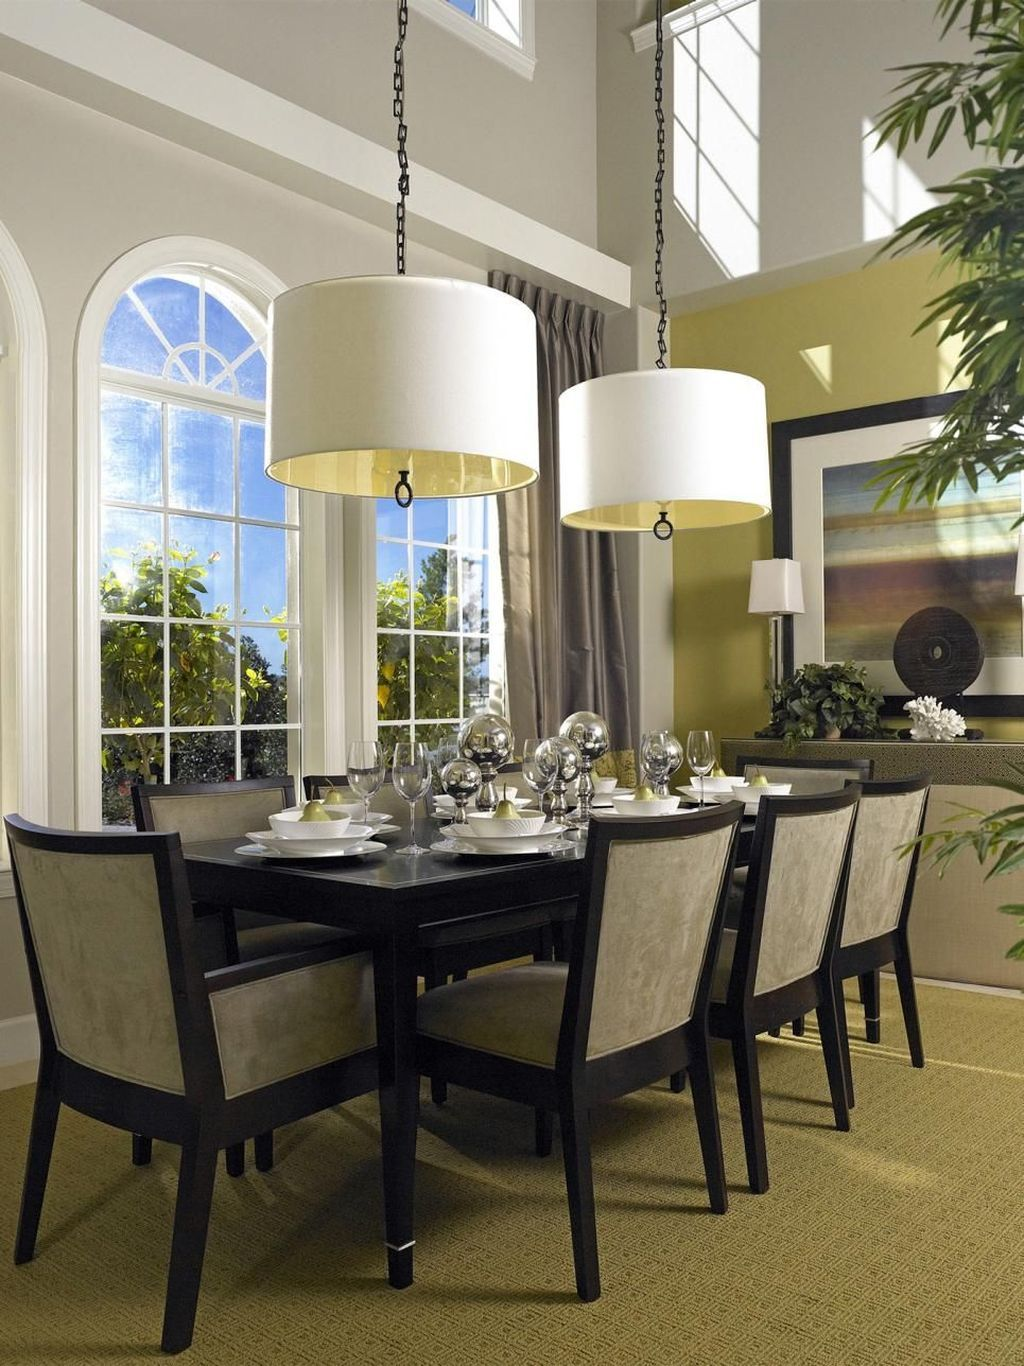 41 Stunning Plant for Your Dinning Room Ideas images